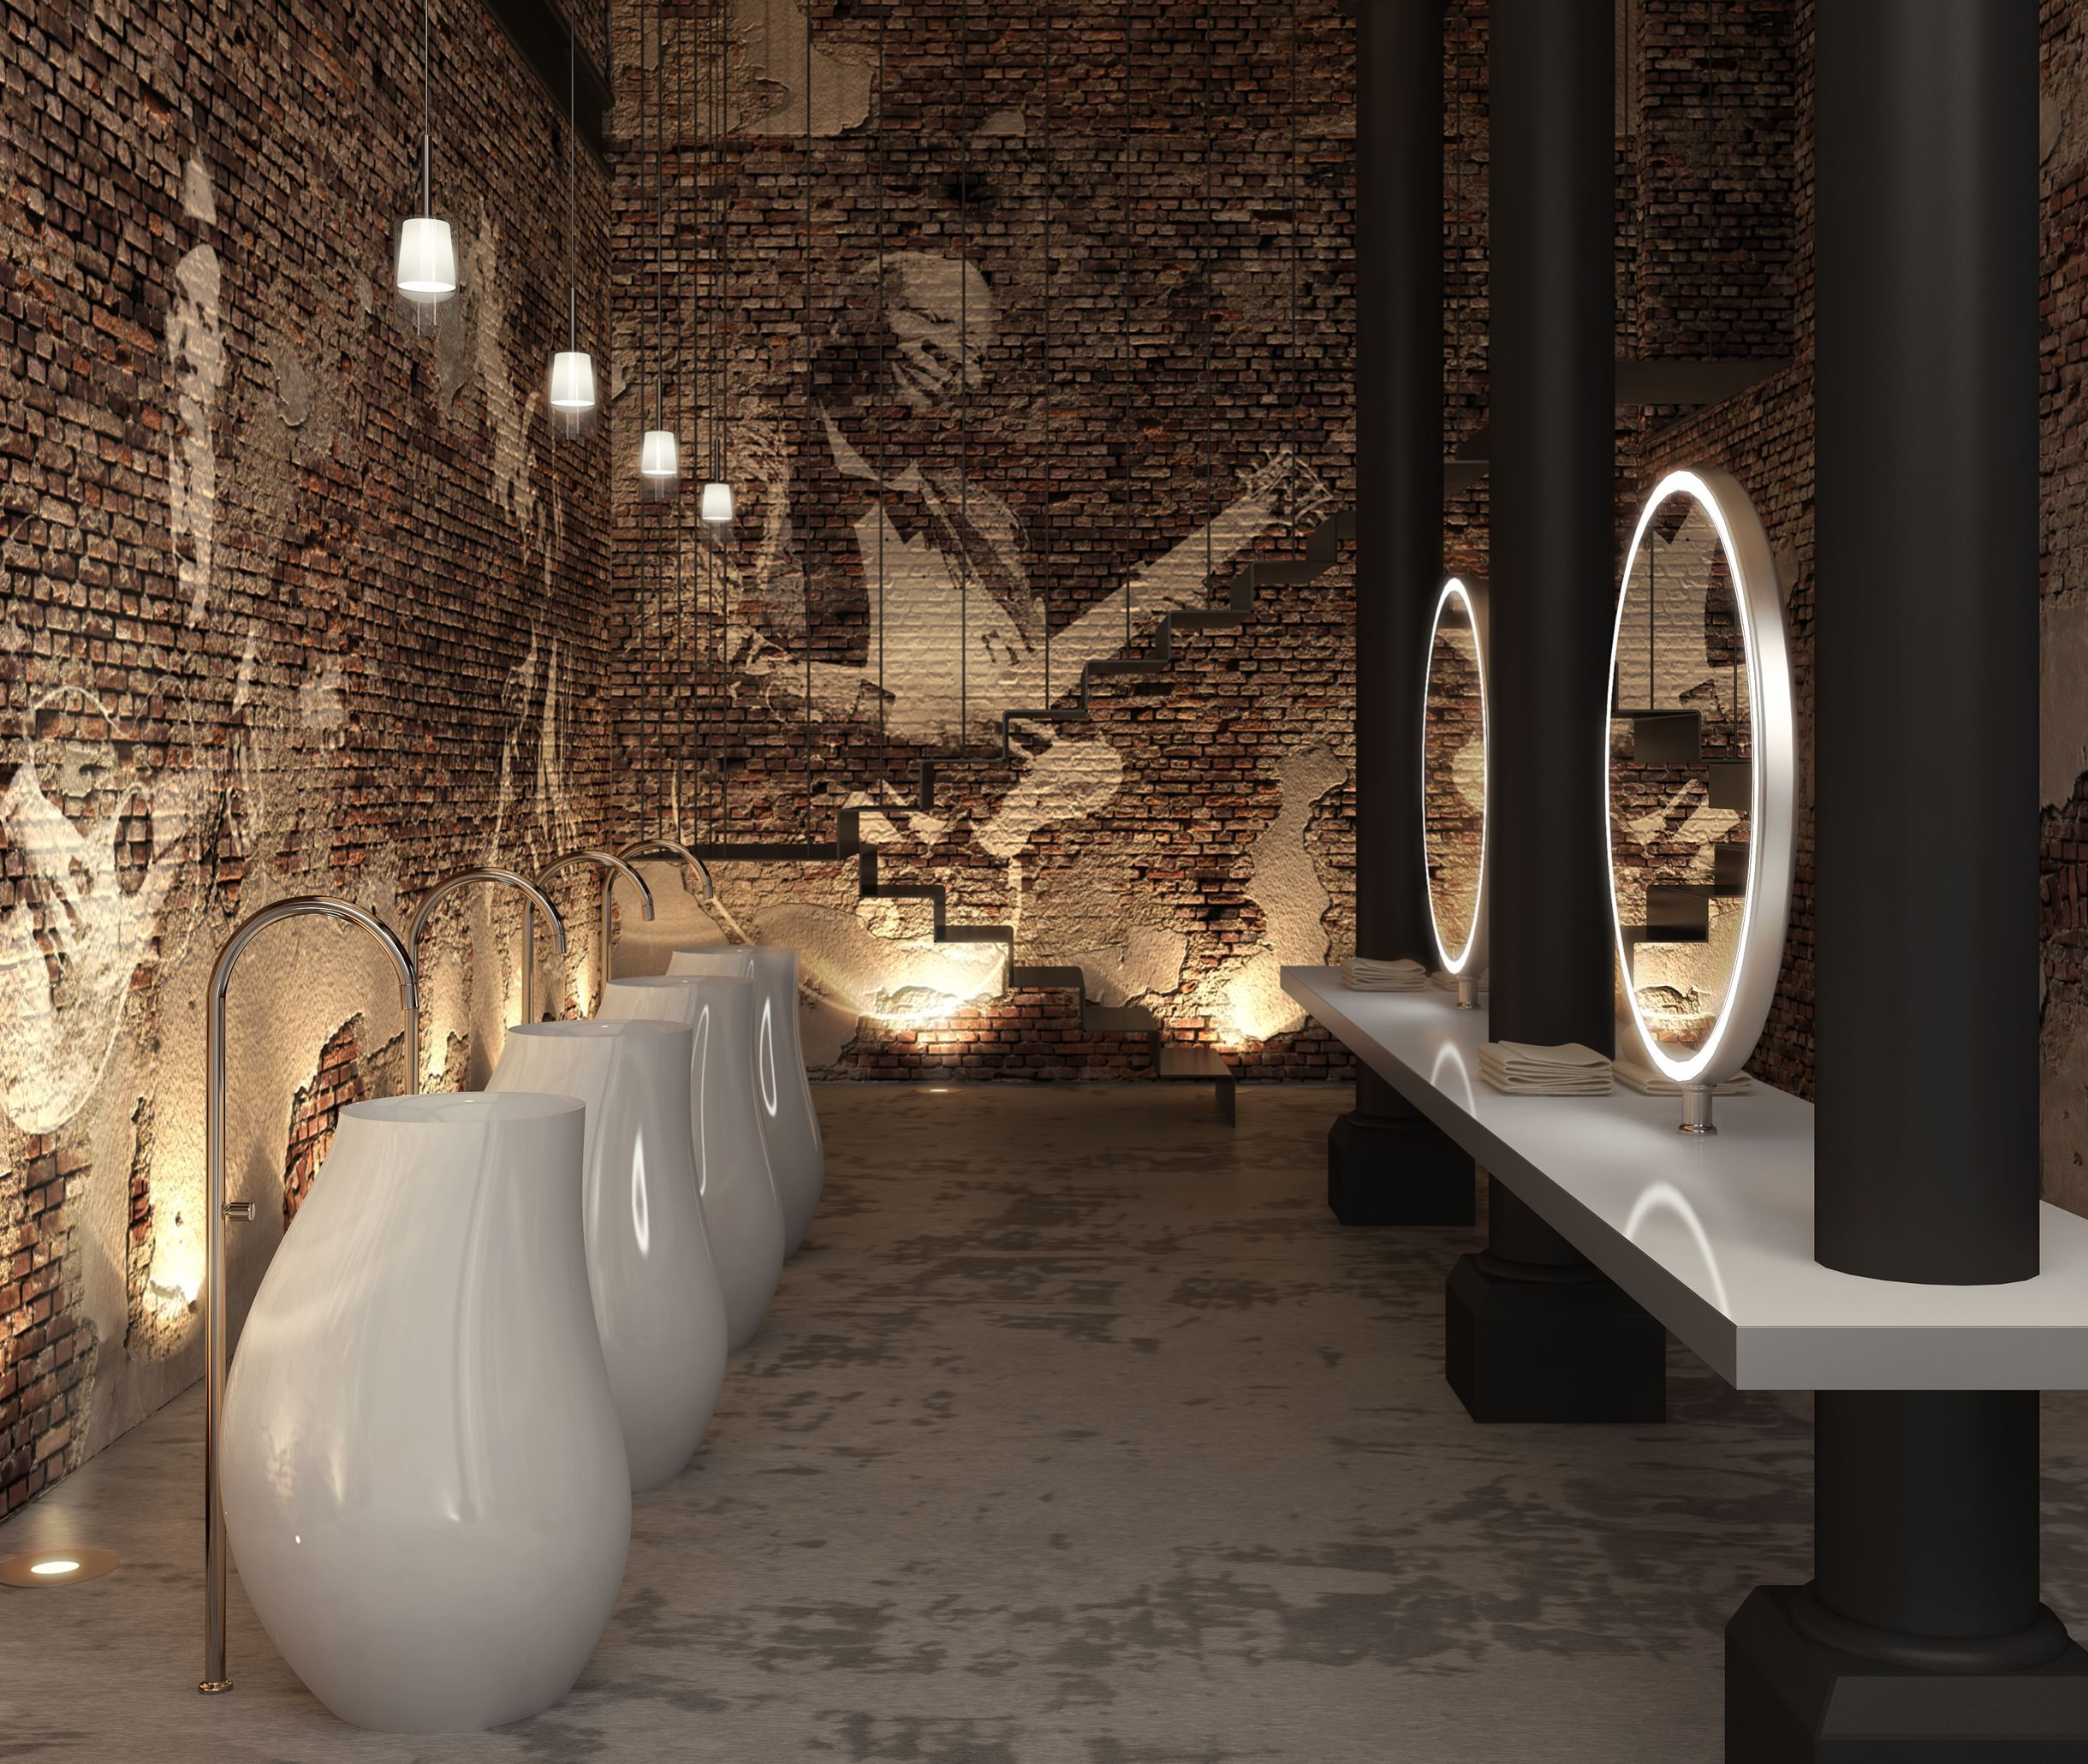 Swing washbasin by sanico a sculpture in motion - Restaurant bathroom design ideas ...